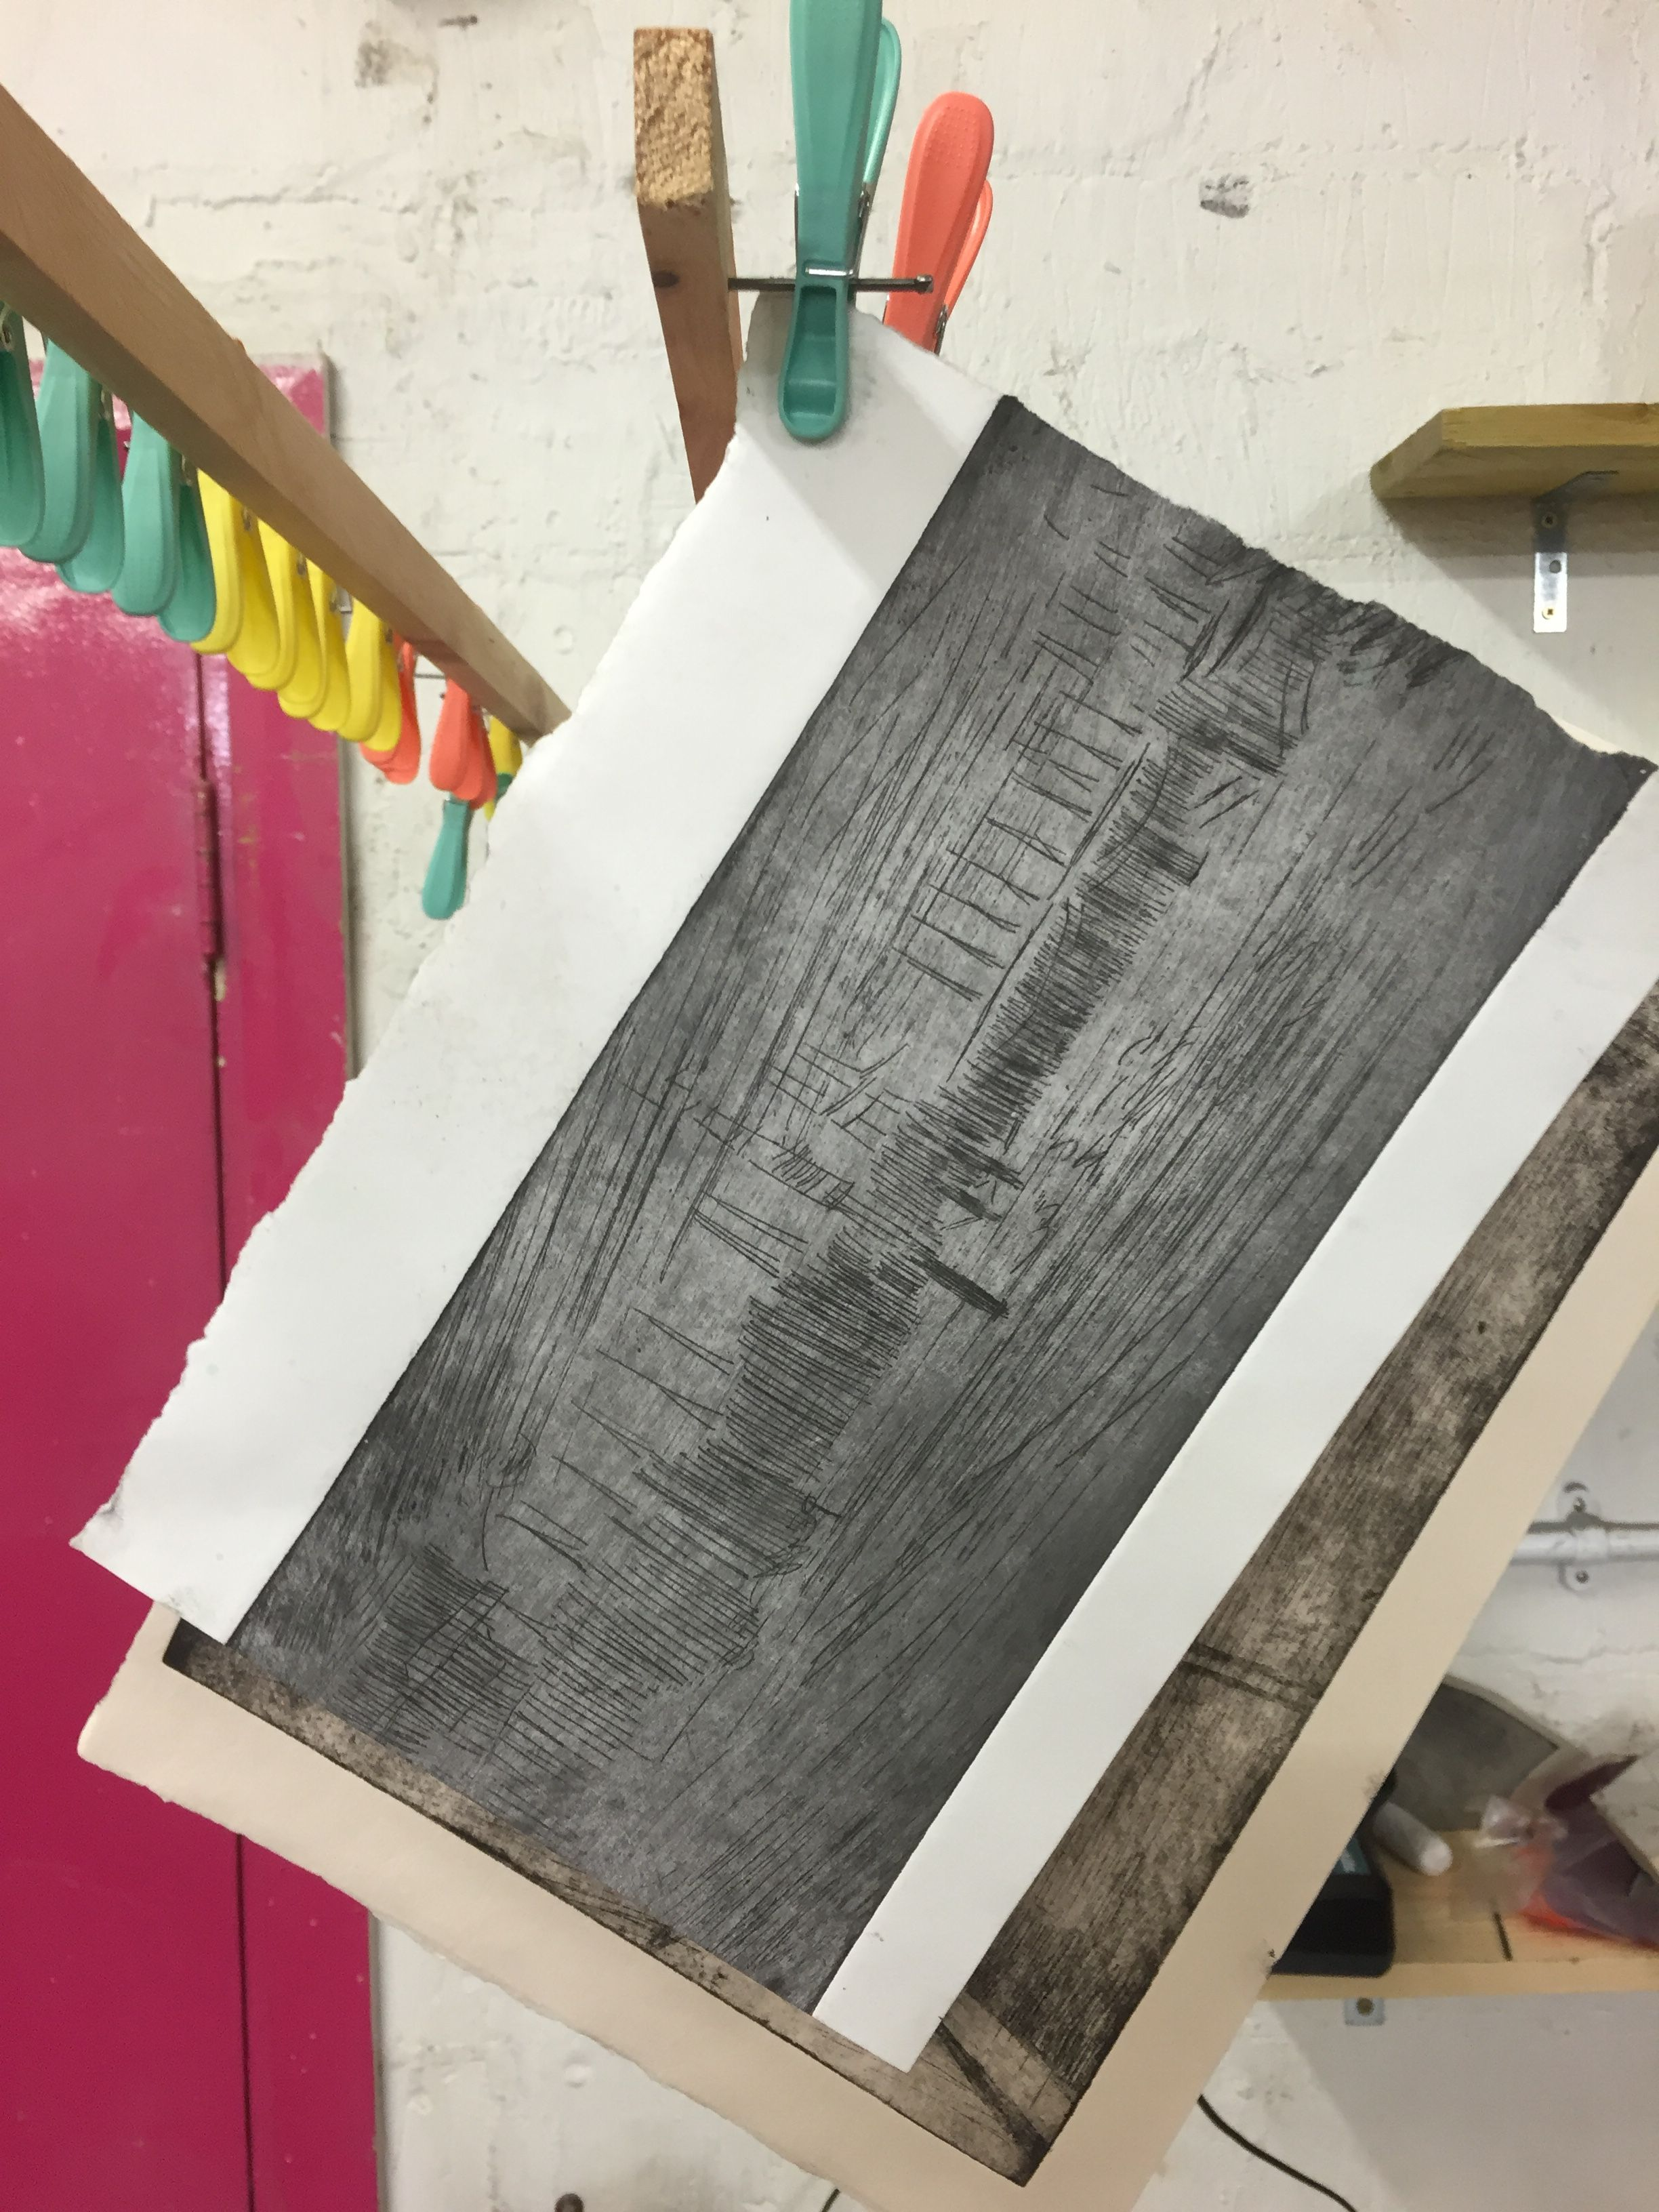 London Printmaking Etching Course Focuses On The Fundamentals Of